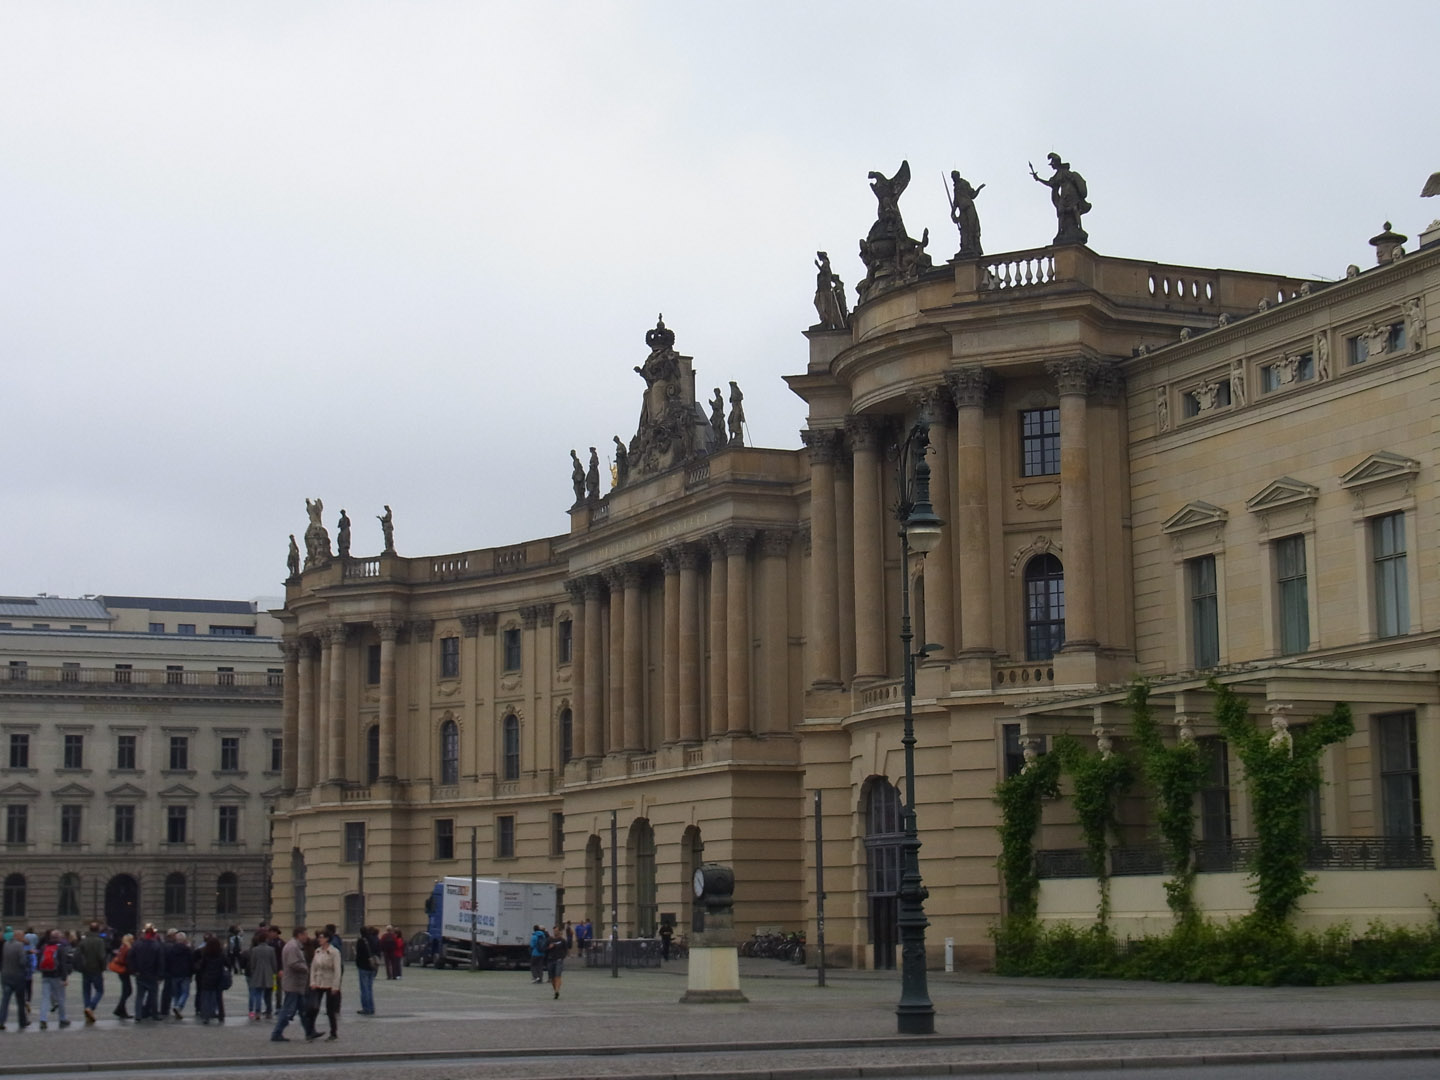 Humboldt University bordering Babelplatz - site of the one of the infamous Nazi book burnings